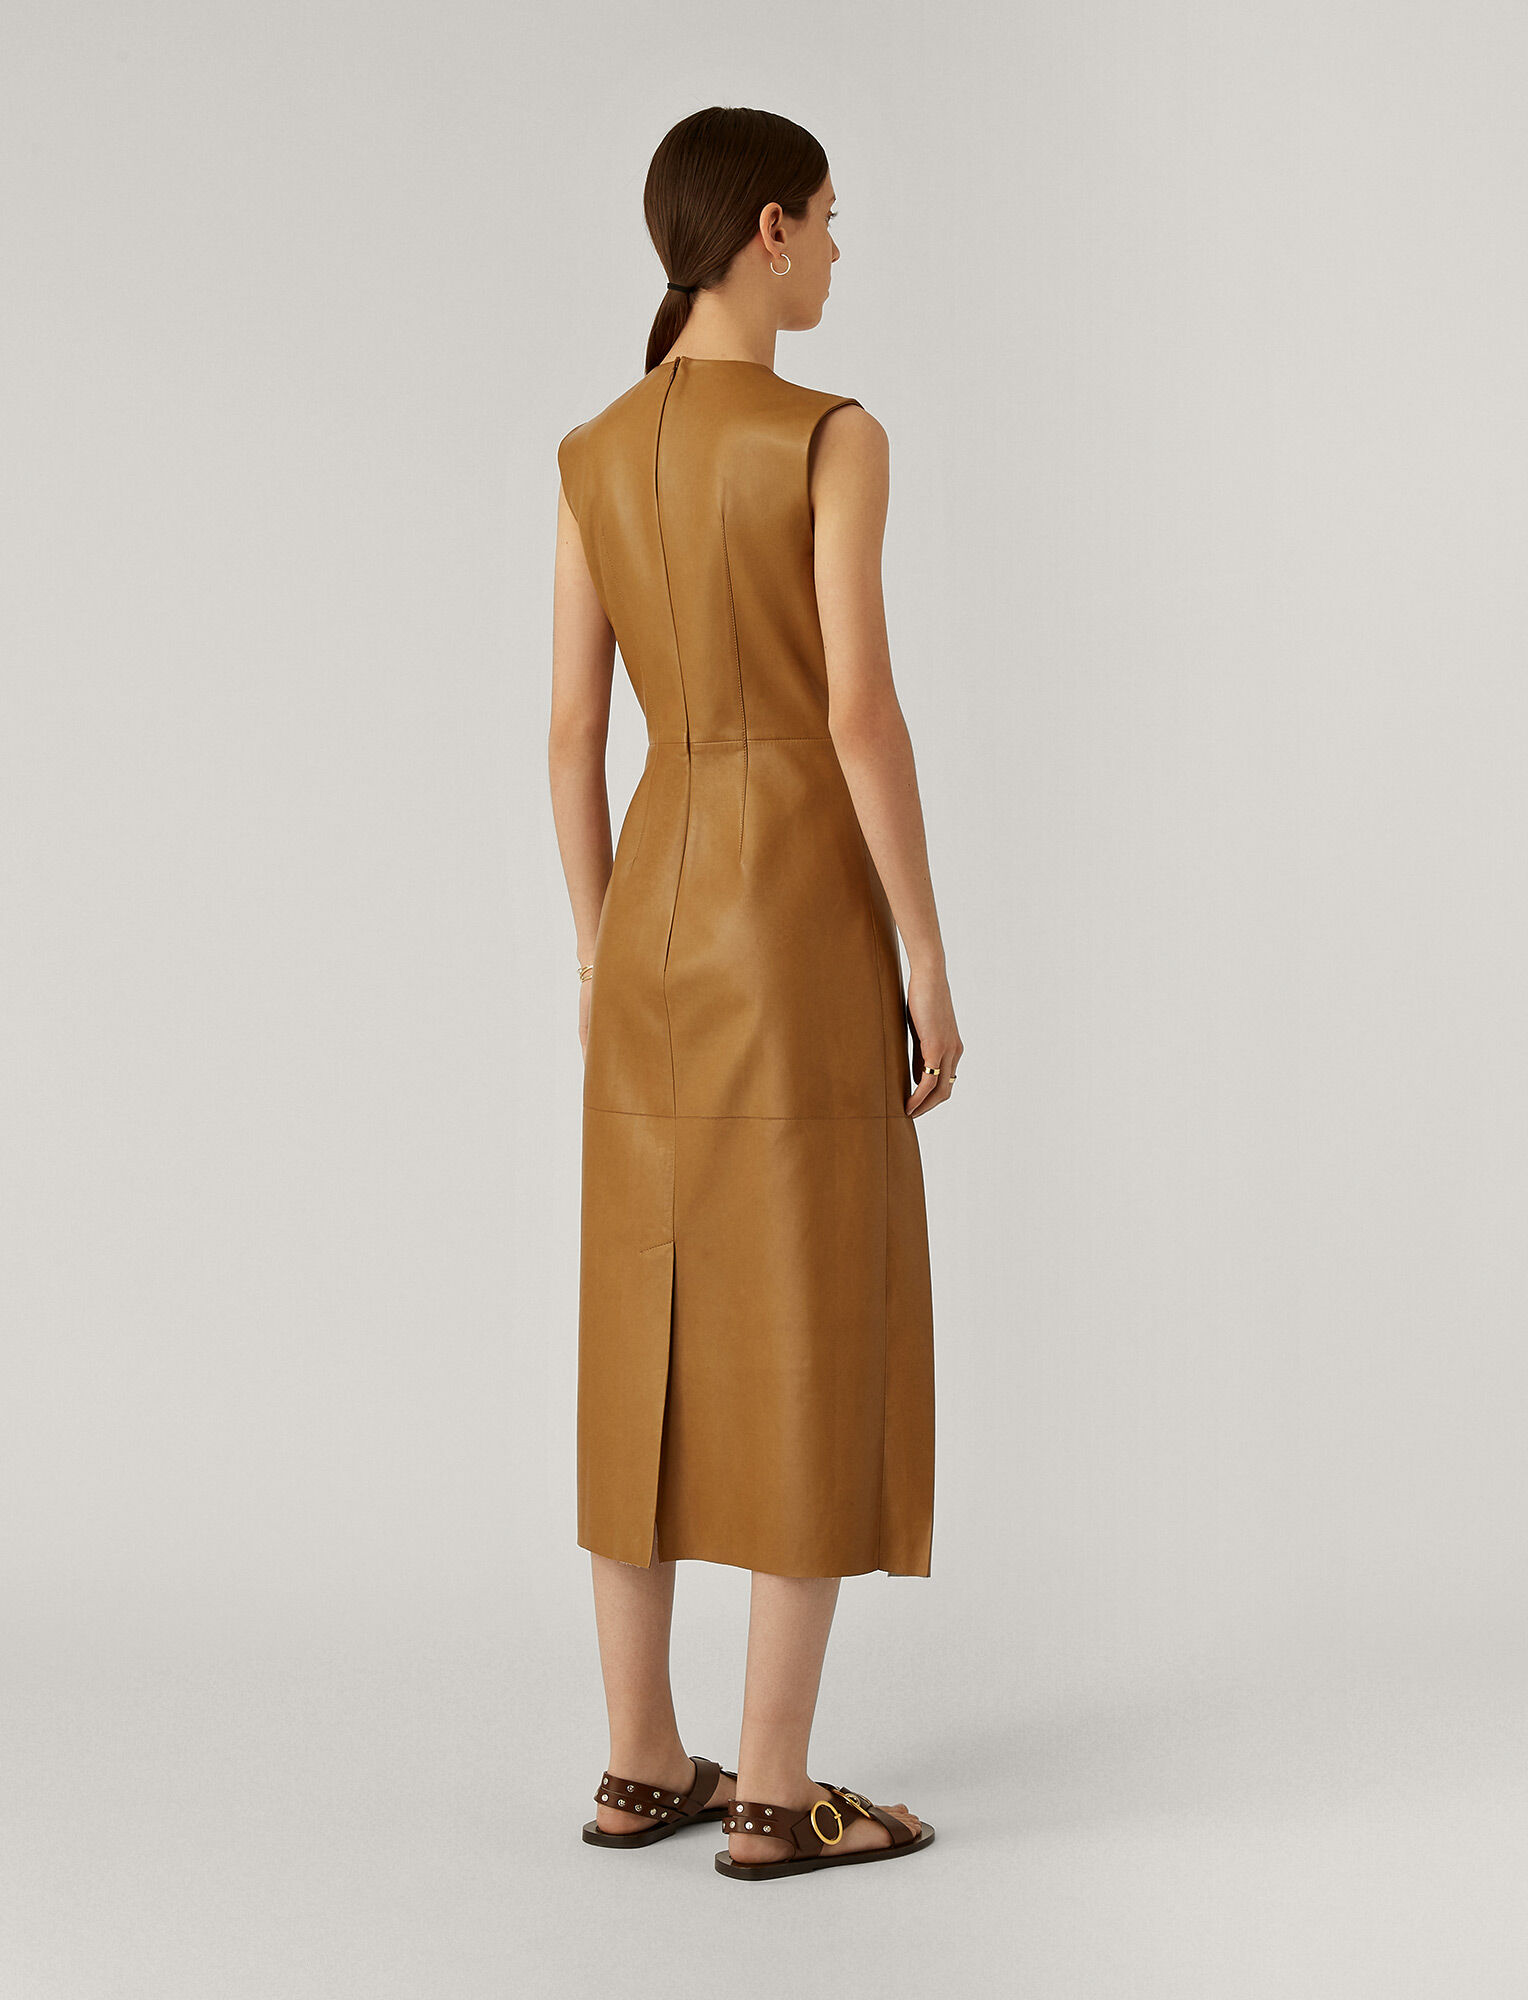 Joseph, Demry Nappa Leather Dress, in Saddle